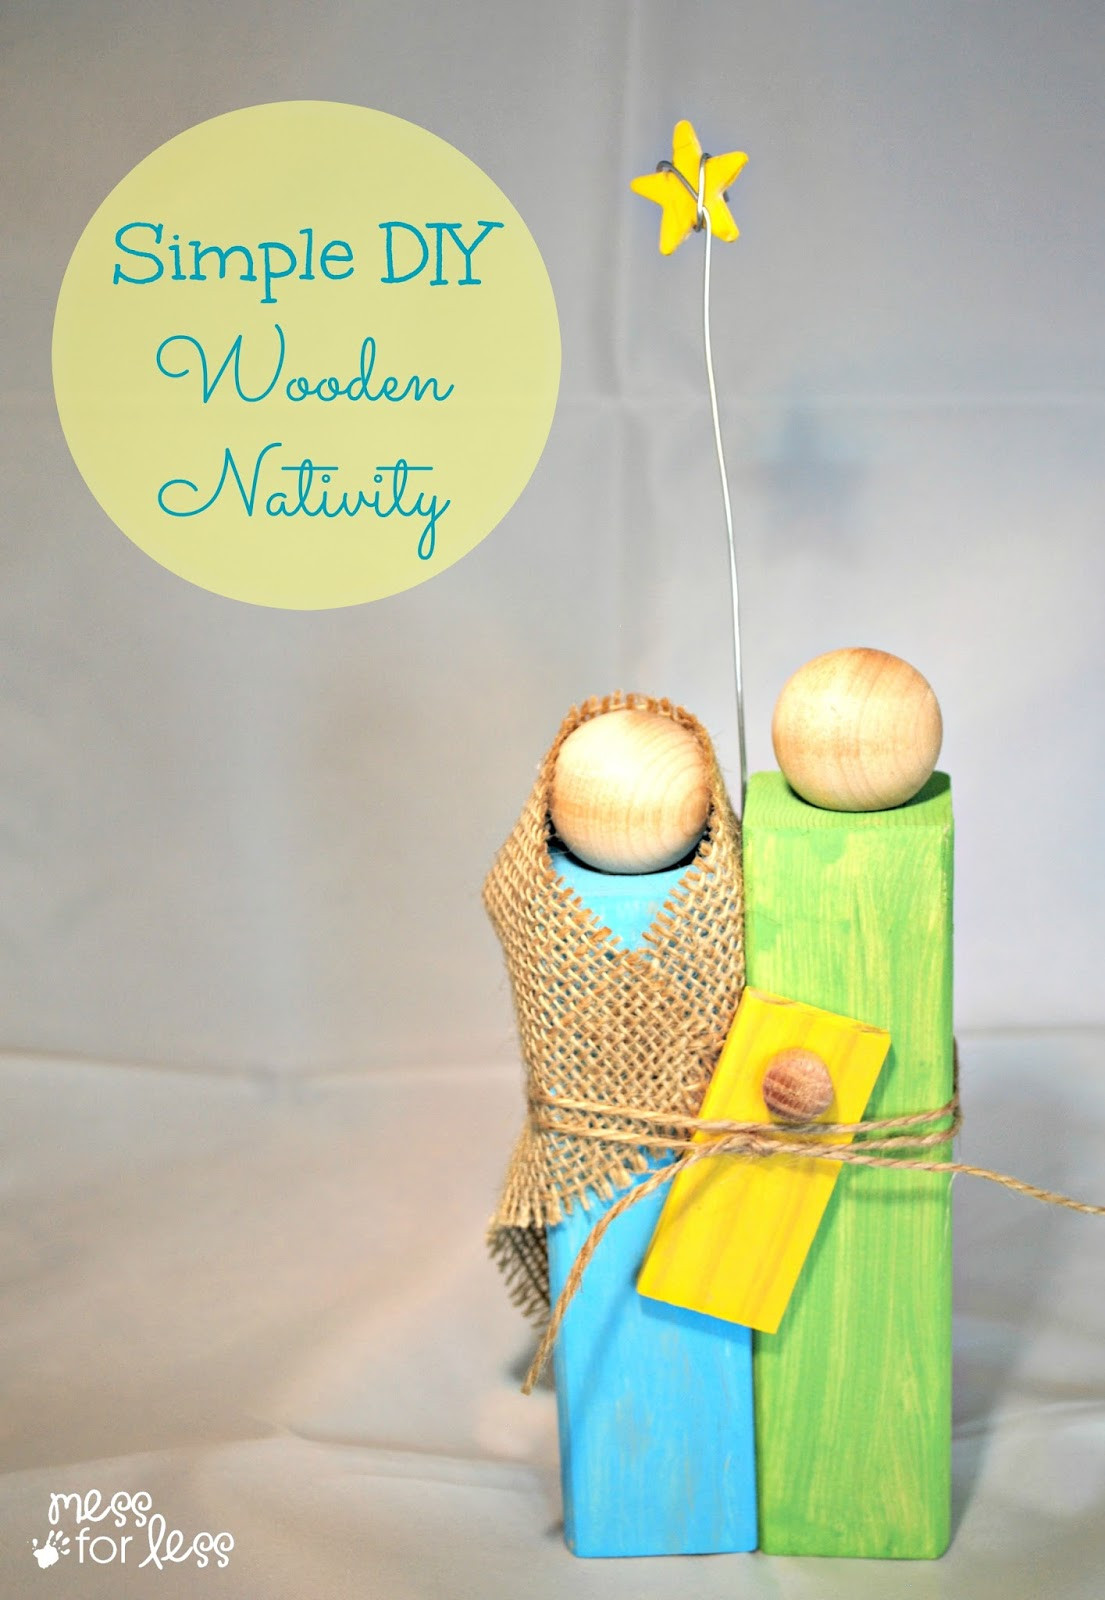 Best ideas about DIY Wood Christmas Gifts . Save or Pin Homemade Christmas Gifts Wooden Nativity Craft Mess Now.